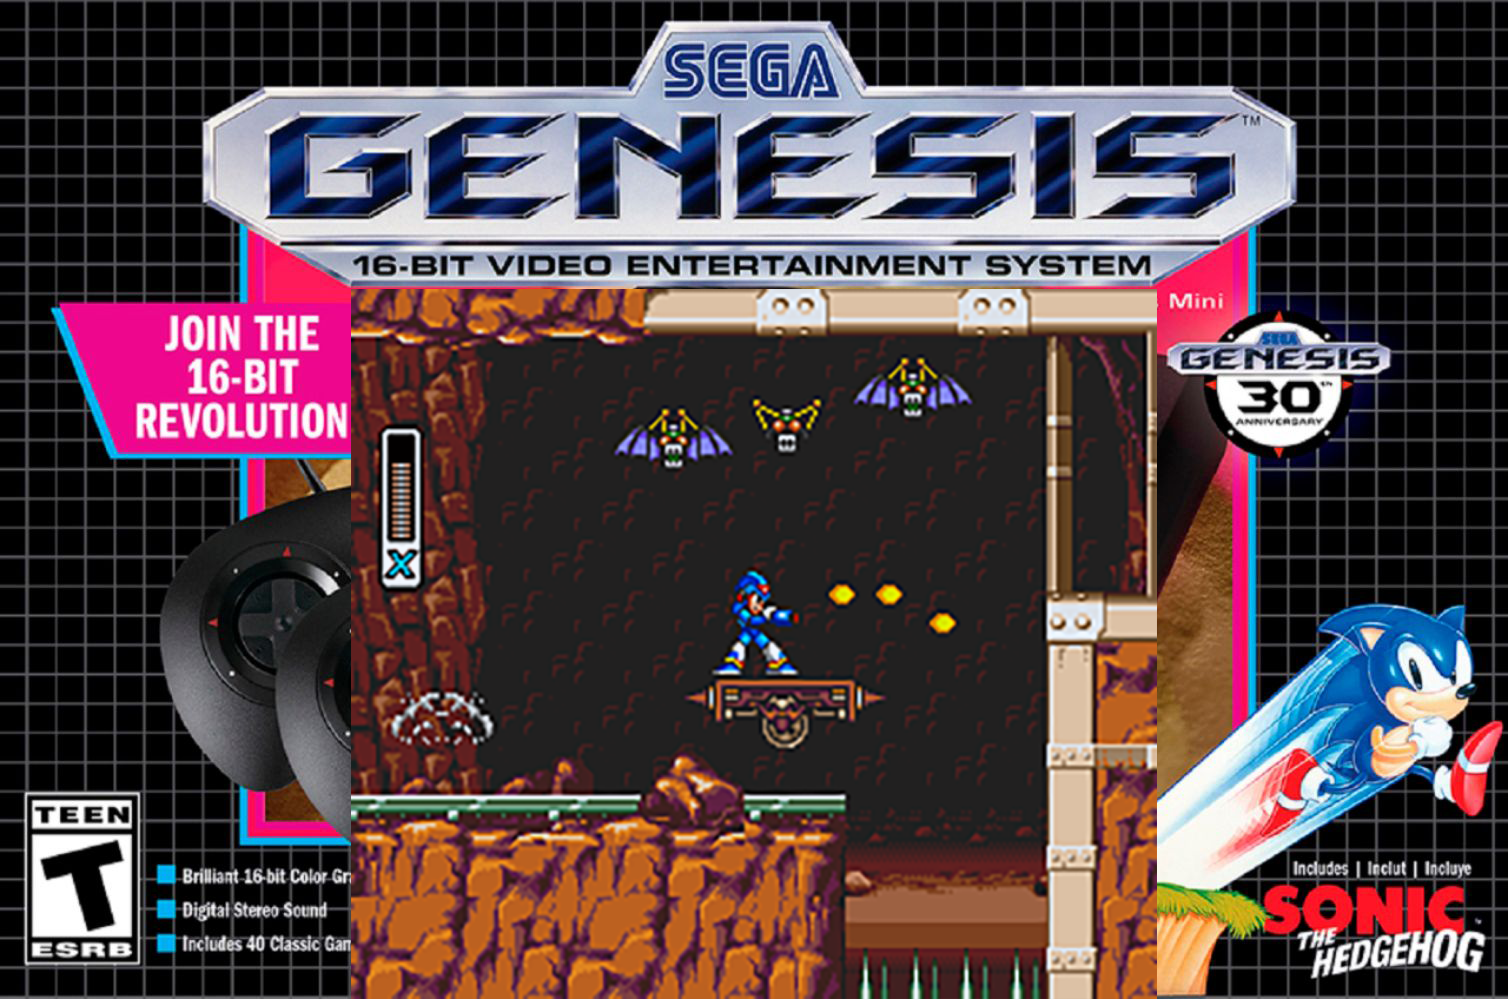 Unofficial Mega Man X port for the Genesis looks fantastic.